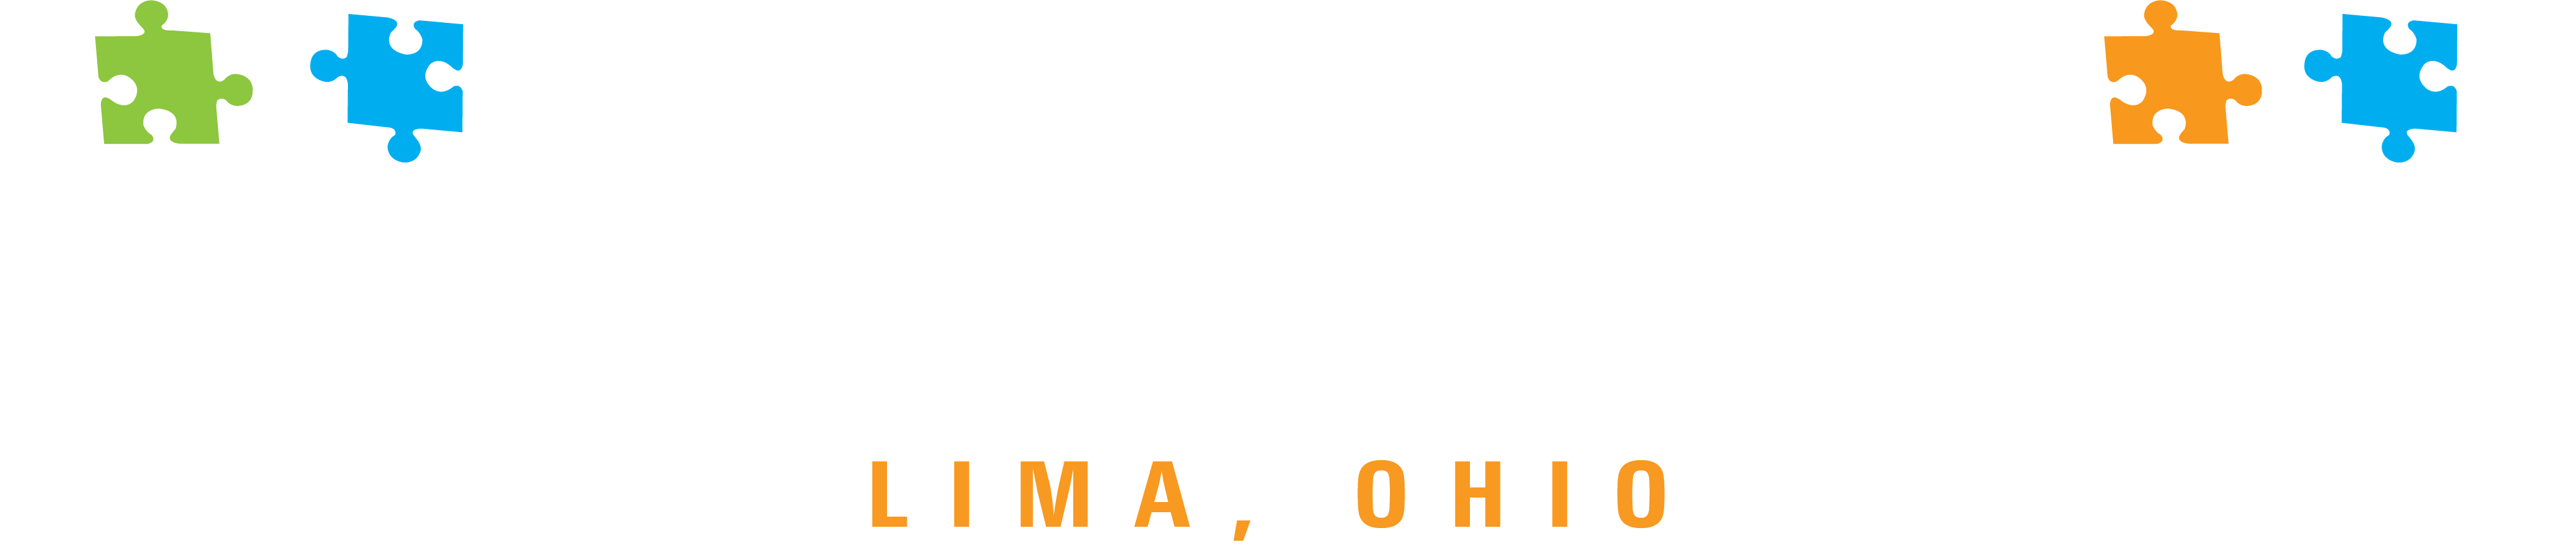 Center For Autism & Dyslexia: Lima – Sesi With University Of Findlay Academic Calendar 2021